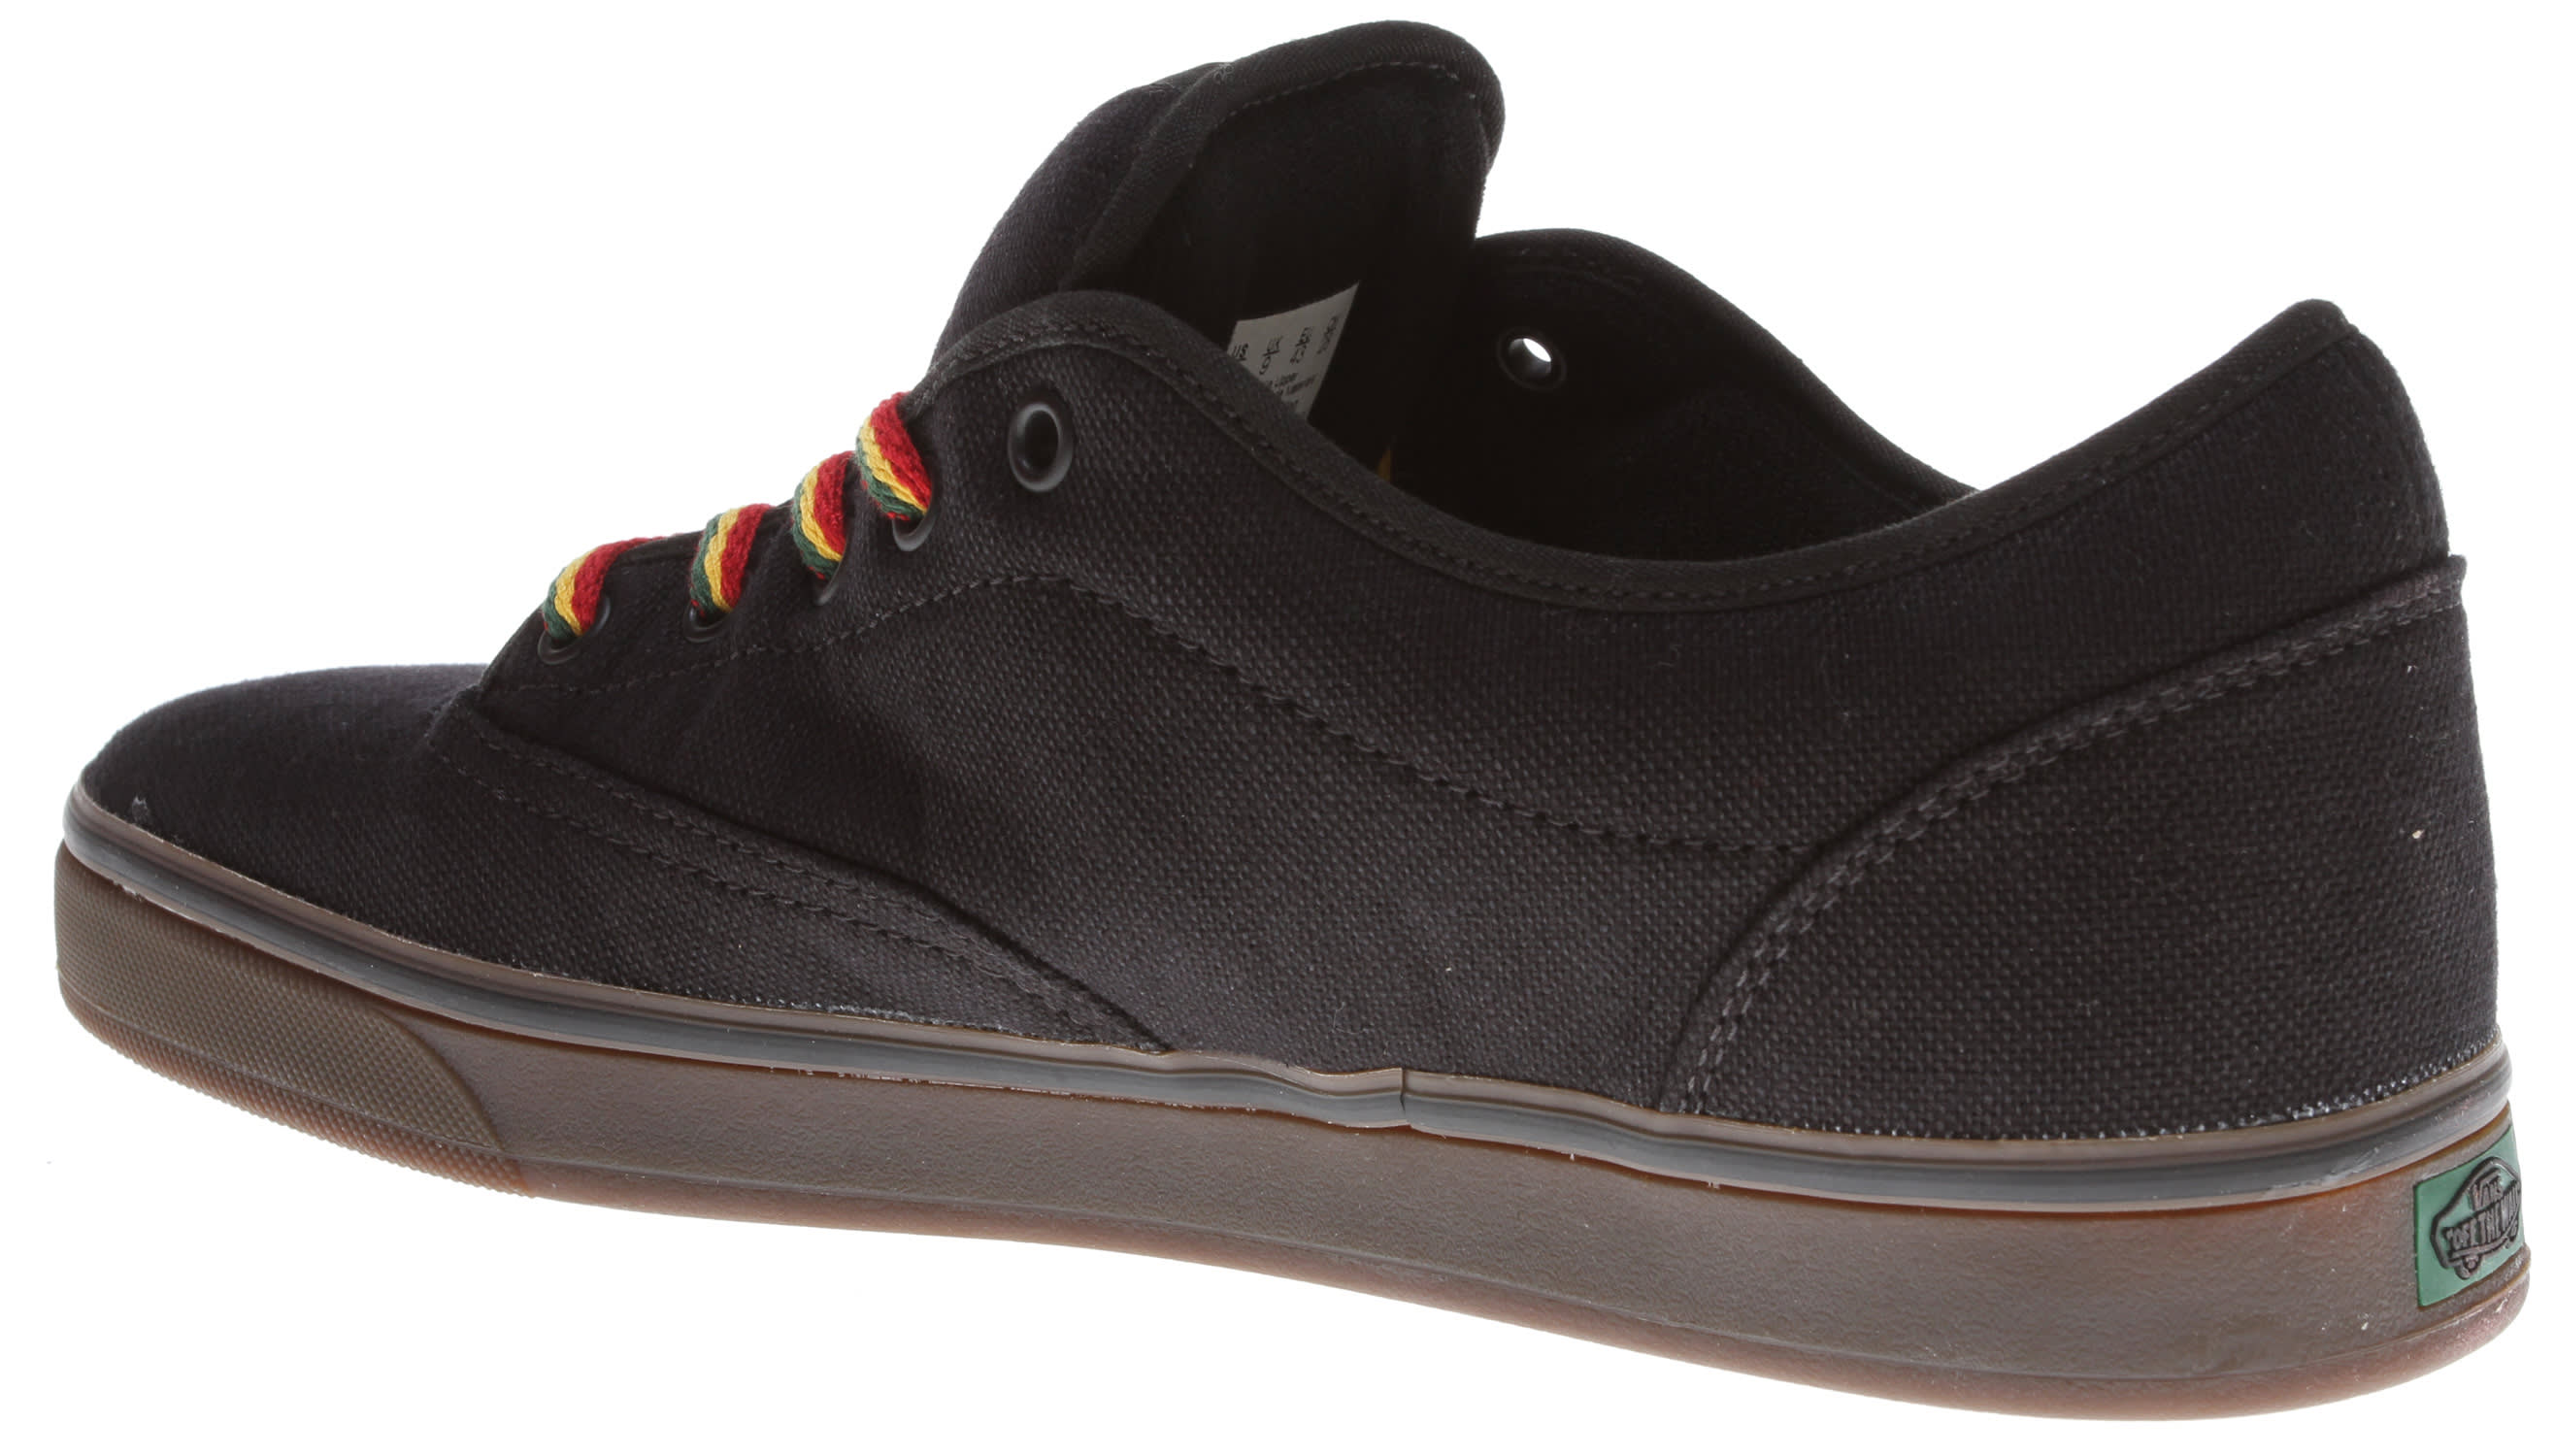 c516458f65 Vans AV Era 1.5 Skate Shoes - thumbnail 3